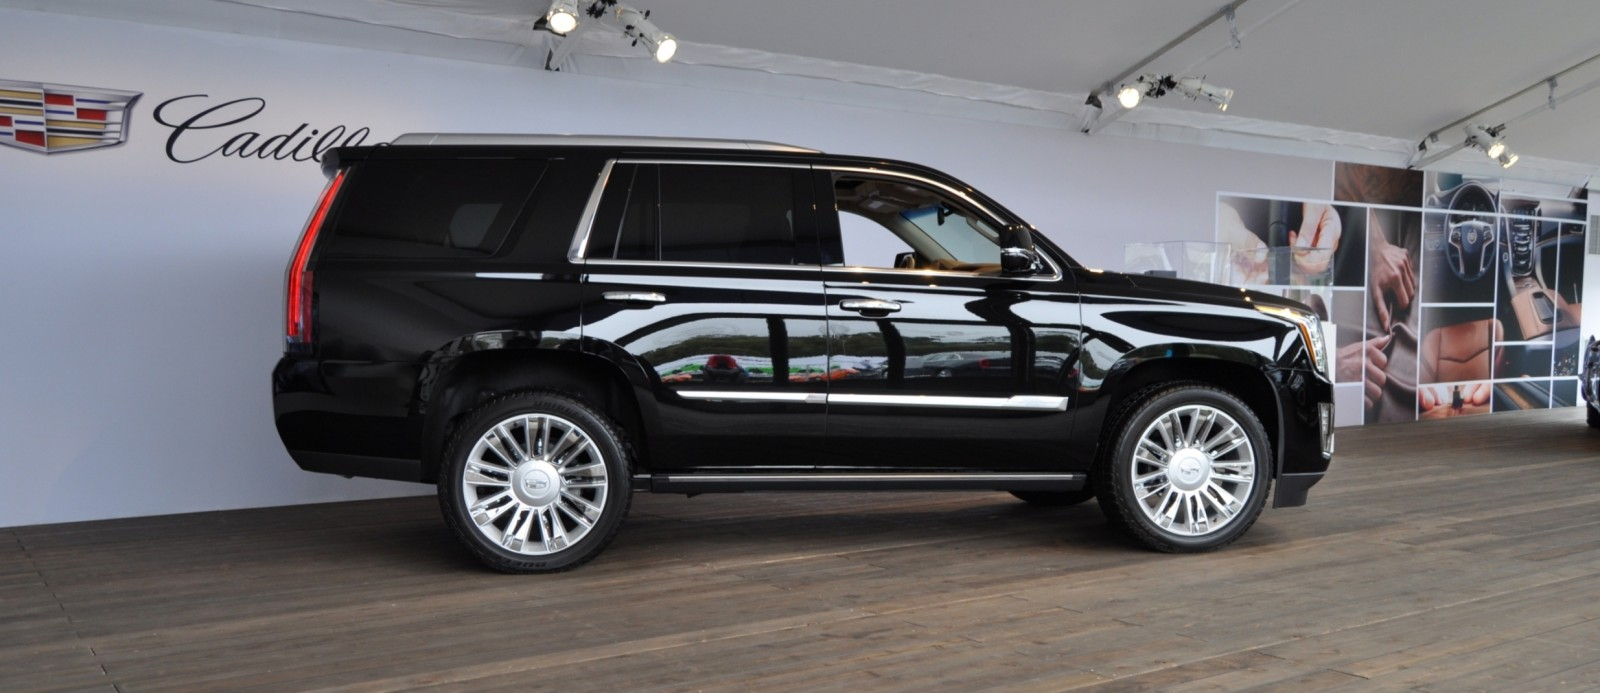 2015 Cadillac Escalade Platinum and Standard Model Unveiled for Pebble Beach 20